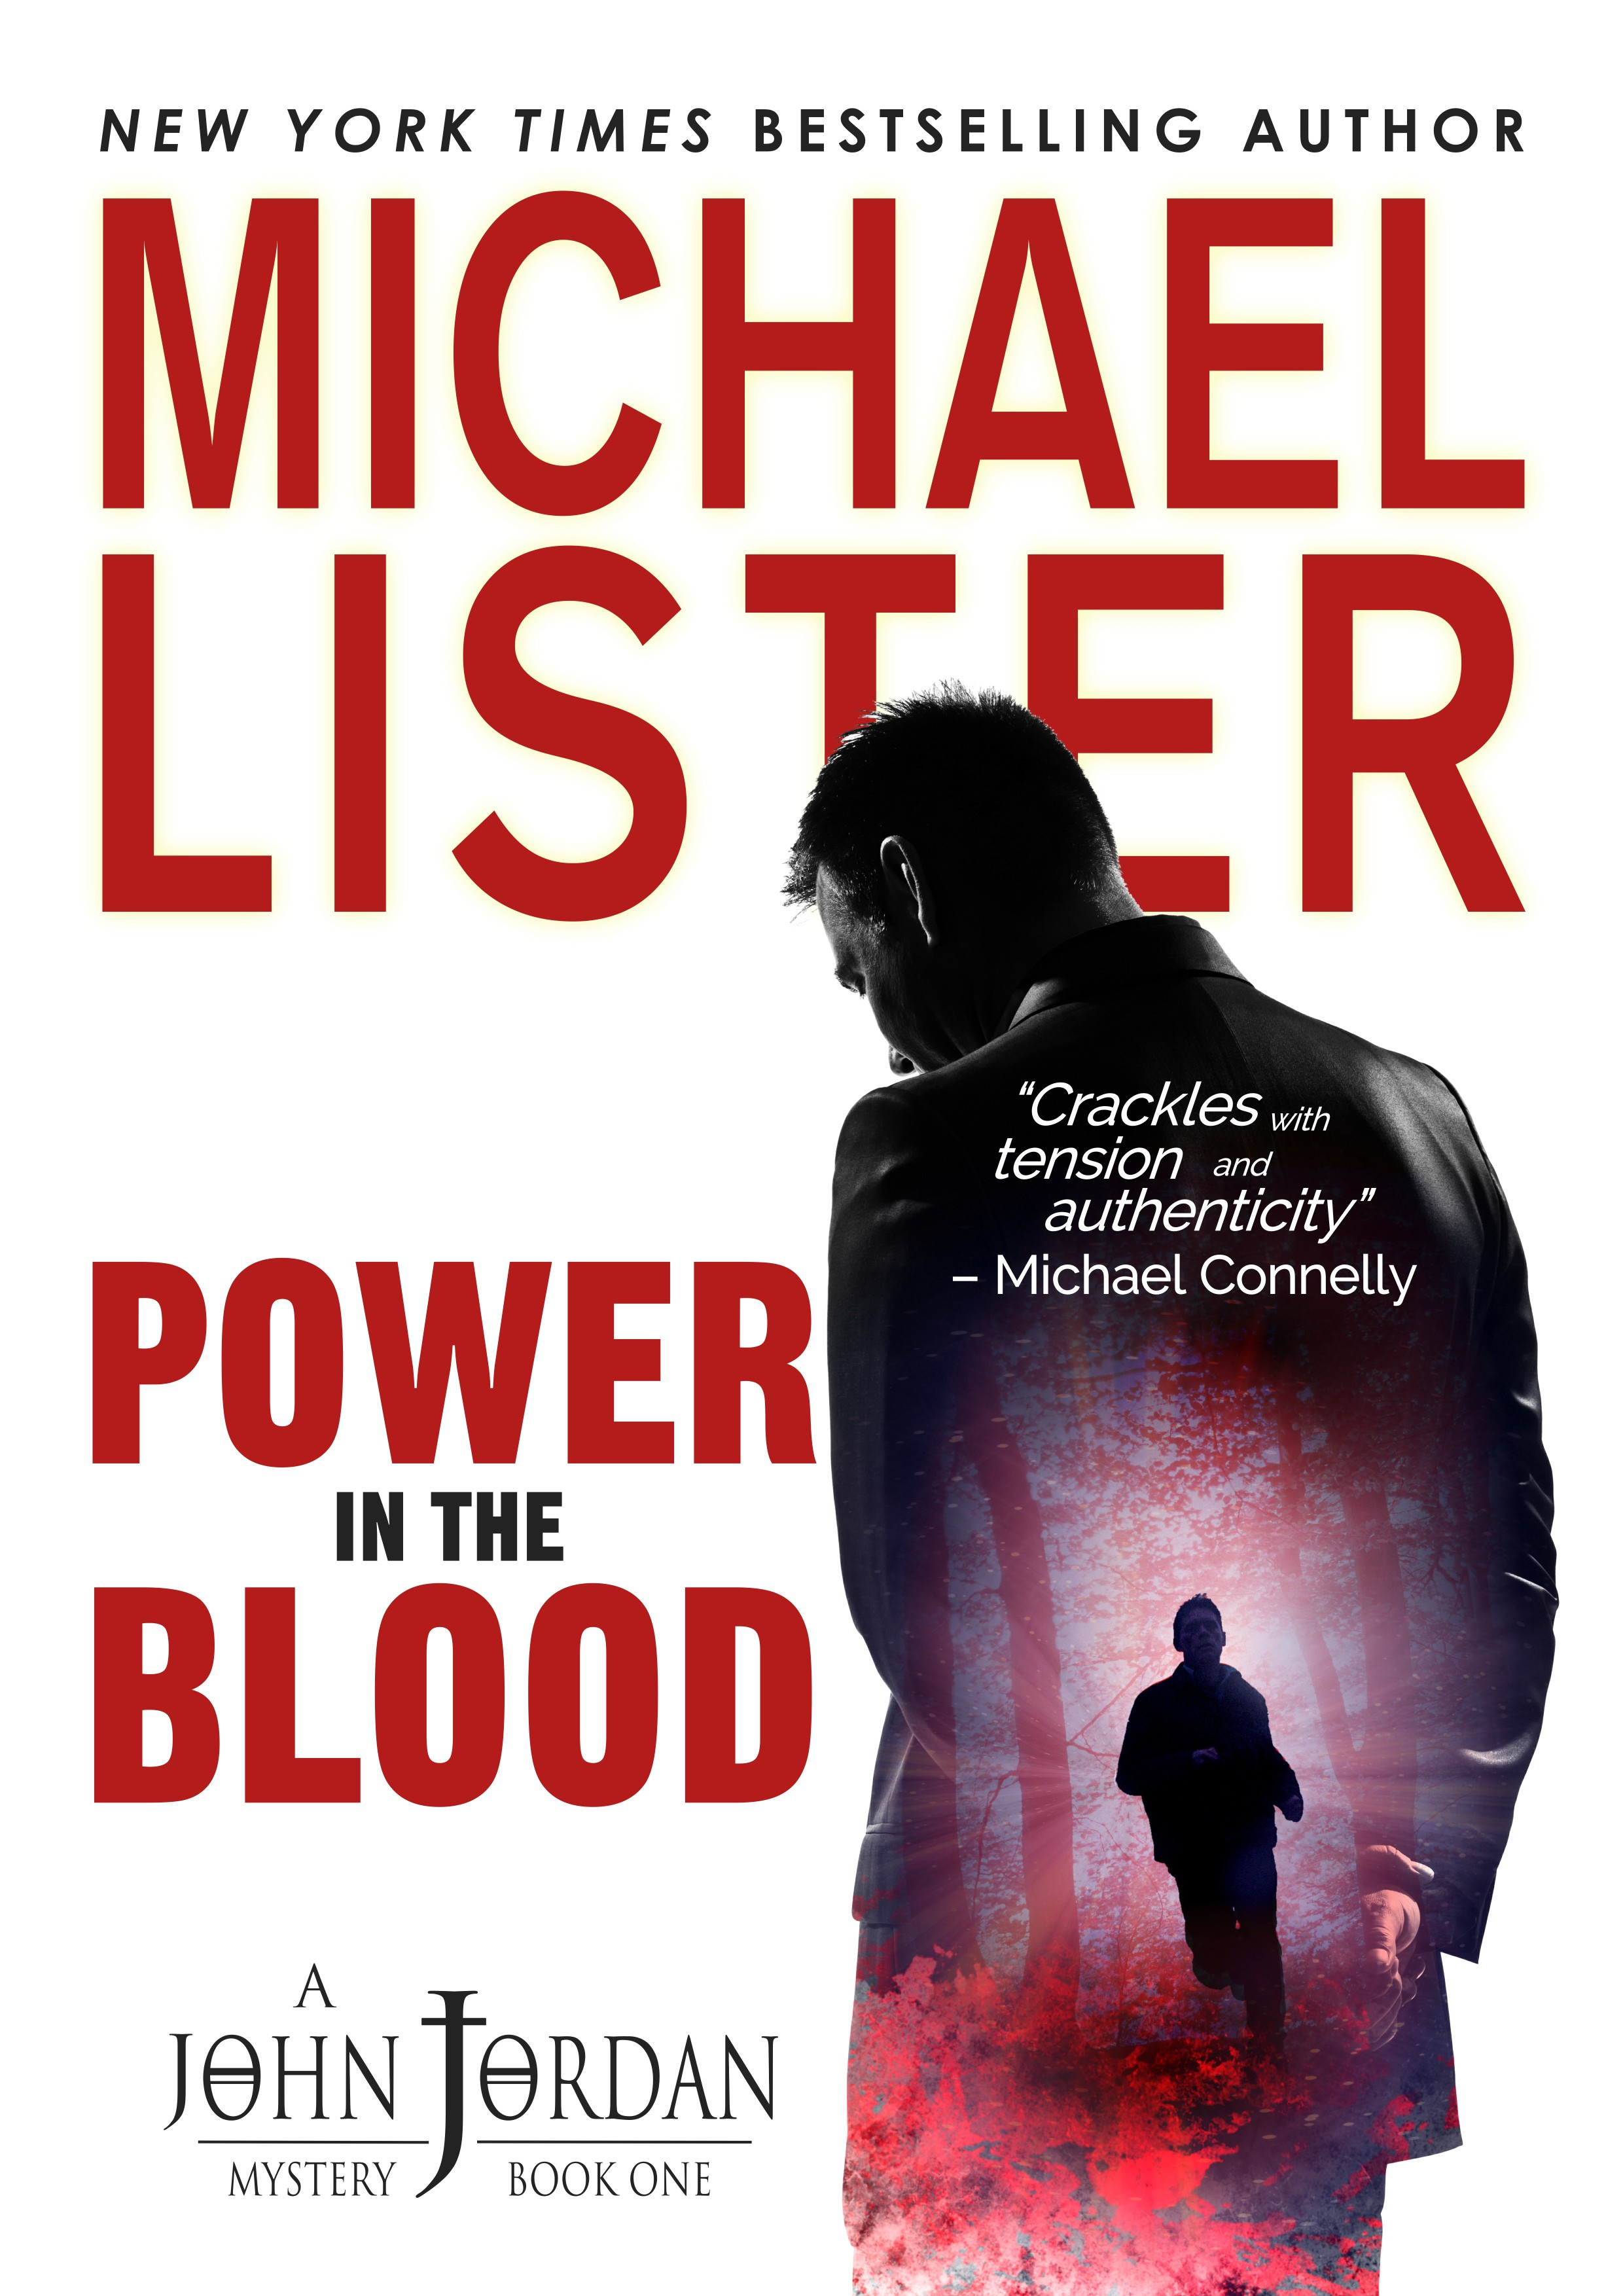 Crime Fiction Book Cover Design for New York Times Bestselling and Award-winning Book